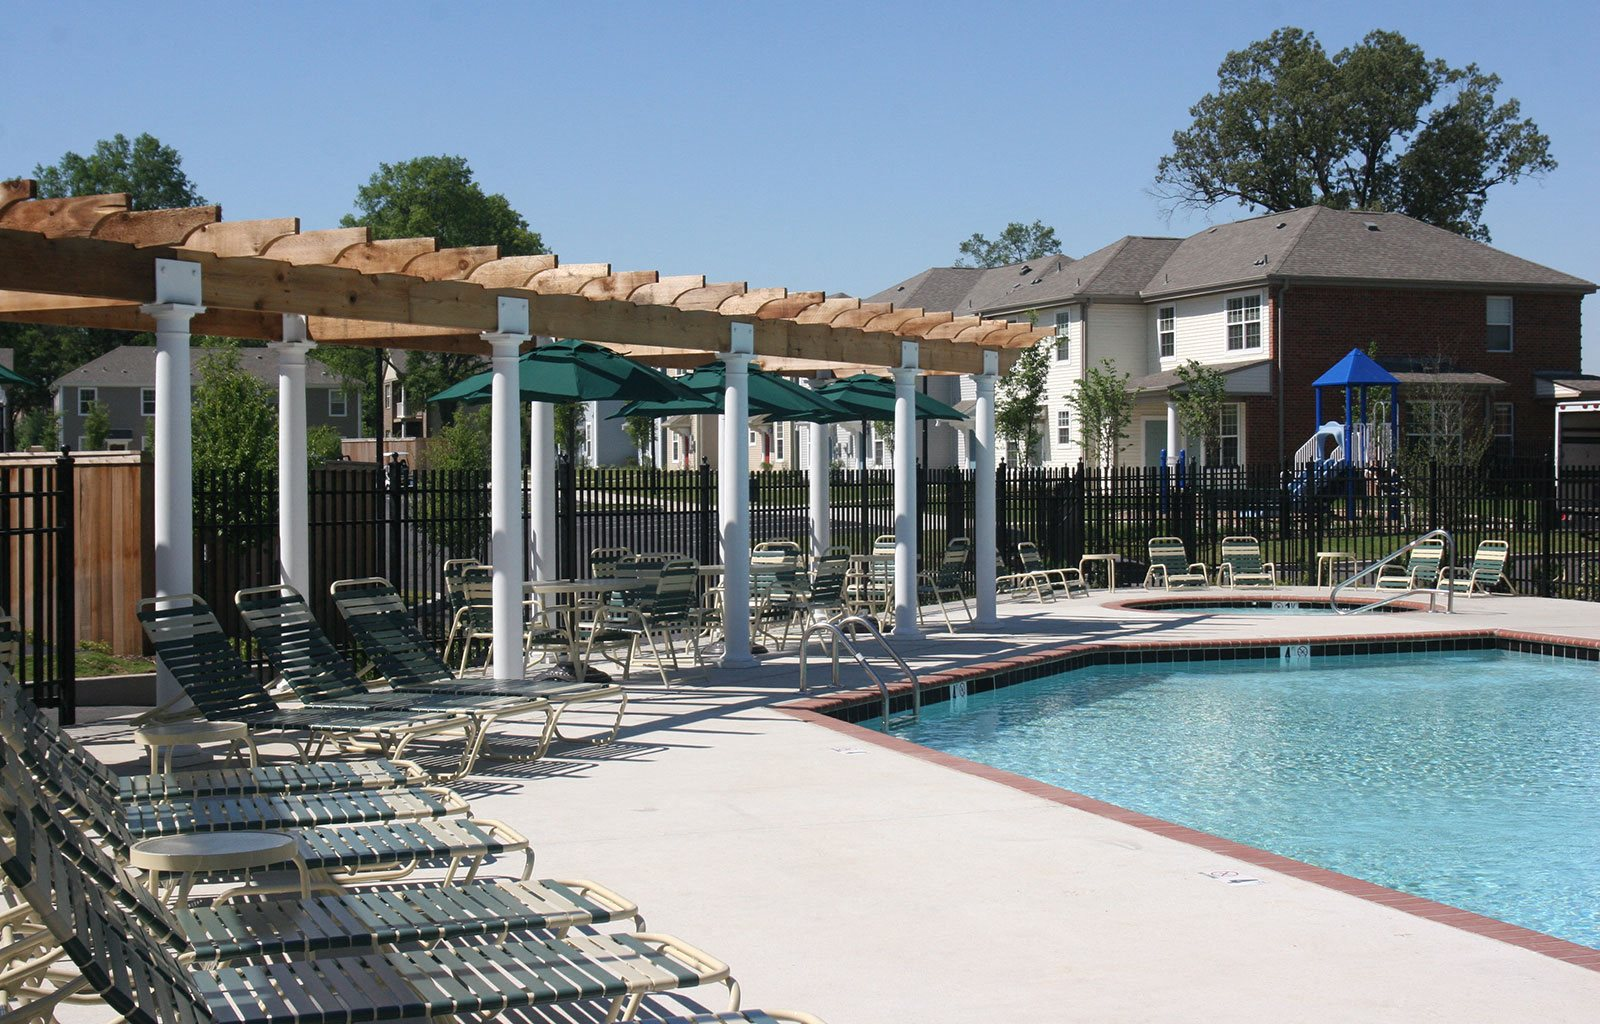 Outdoor Swimming Pool area with seating-University Place Apartments, Memphis, TN 38104